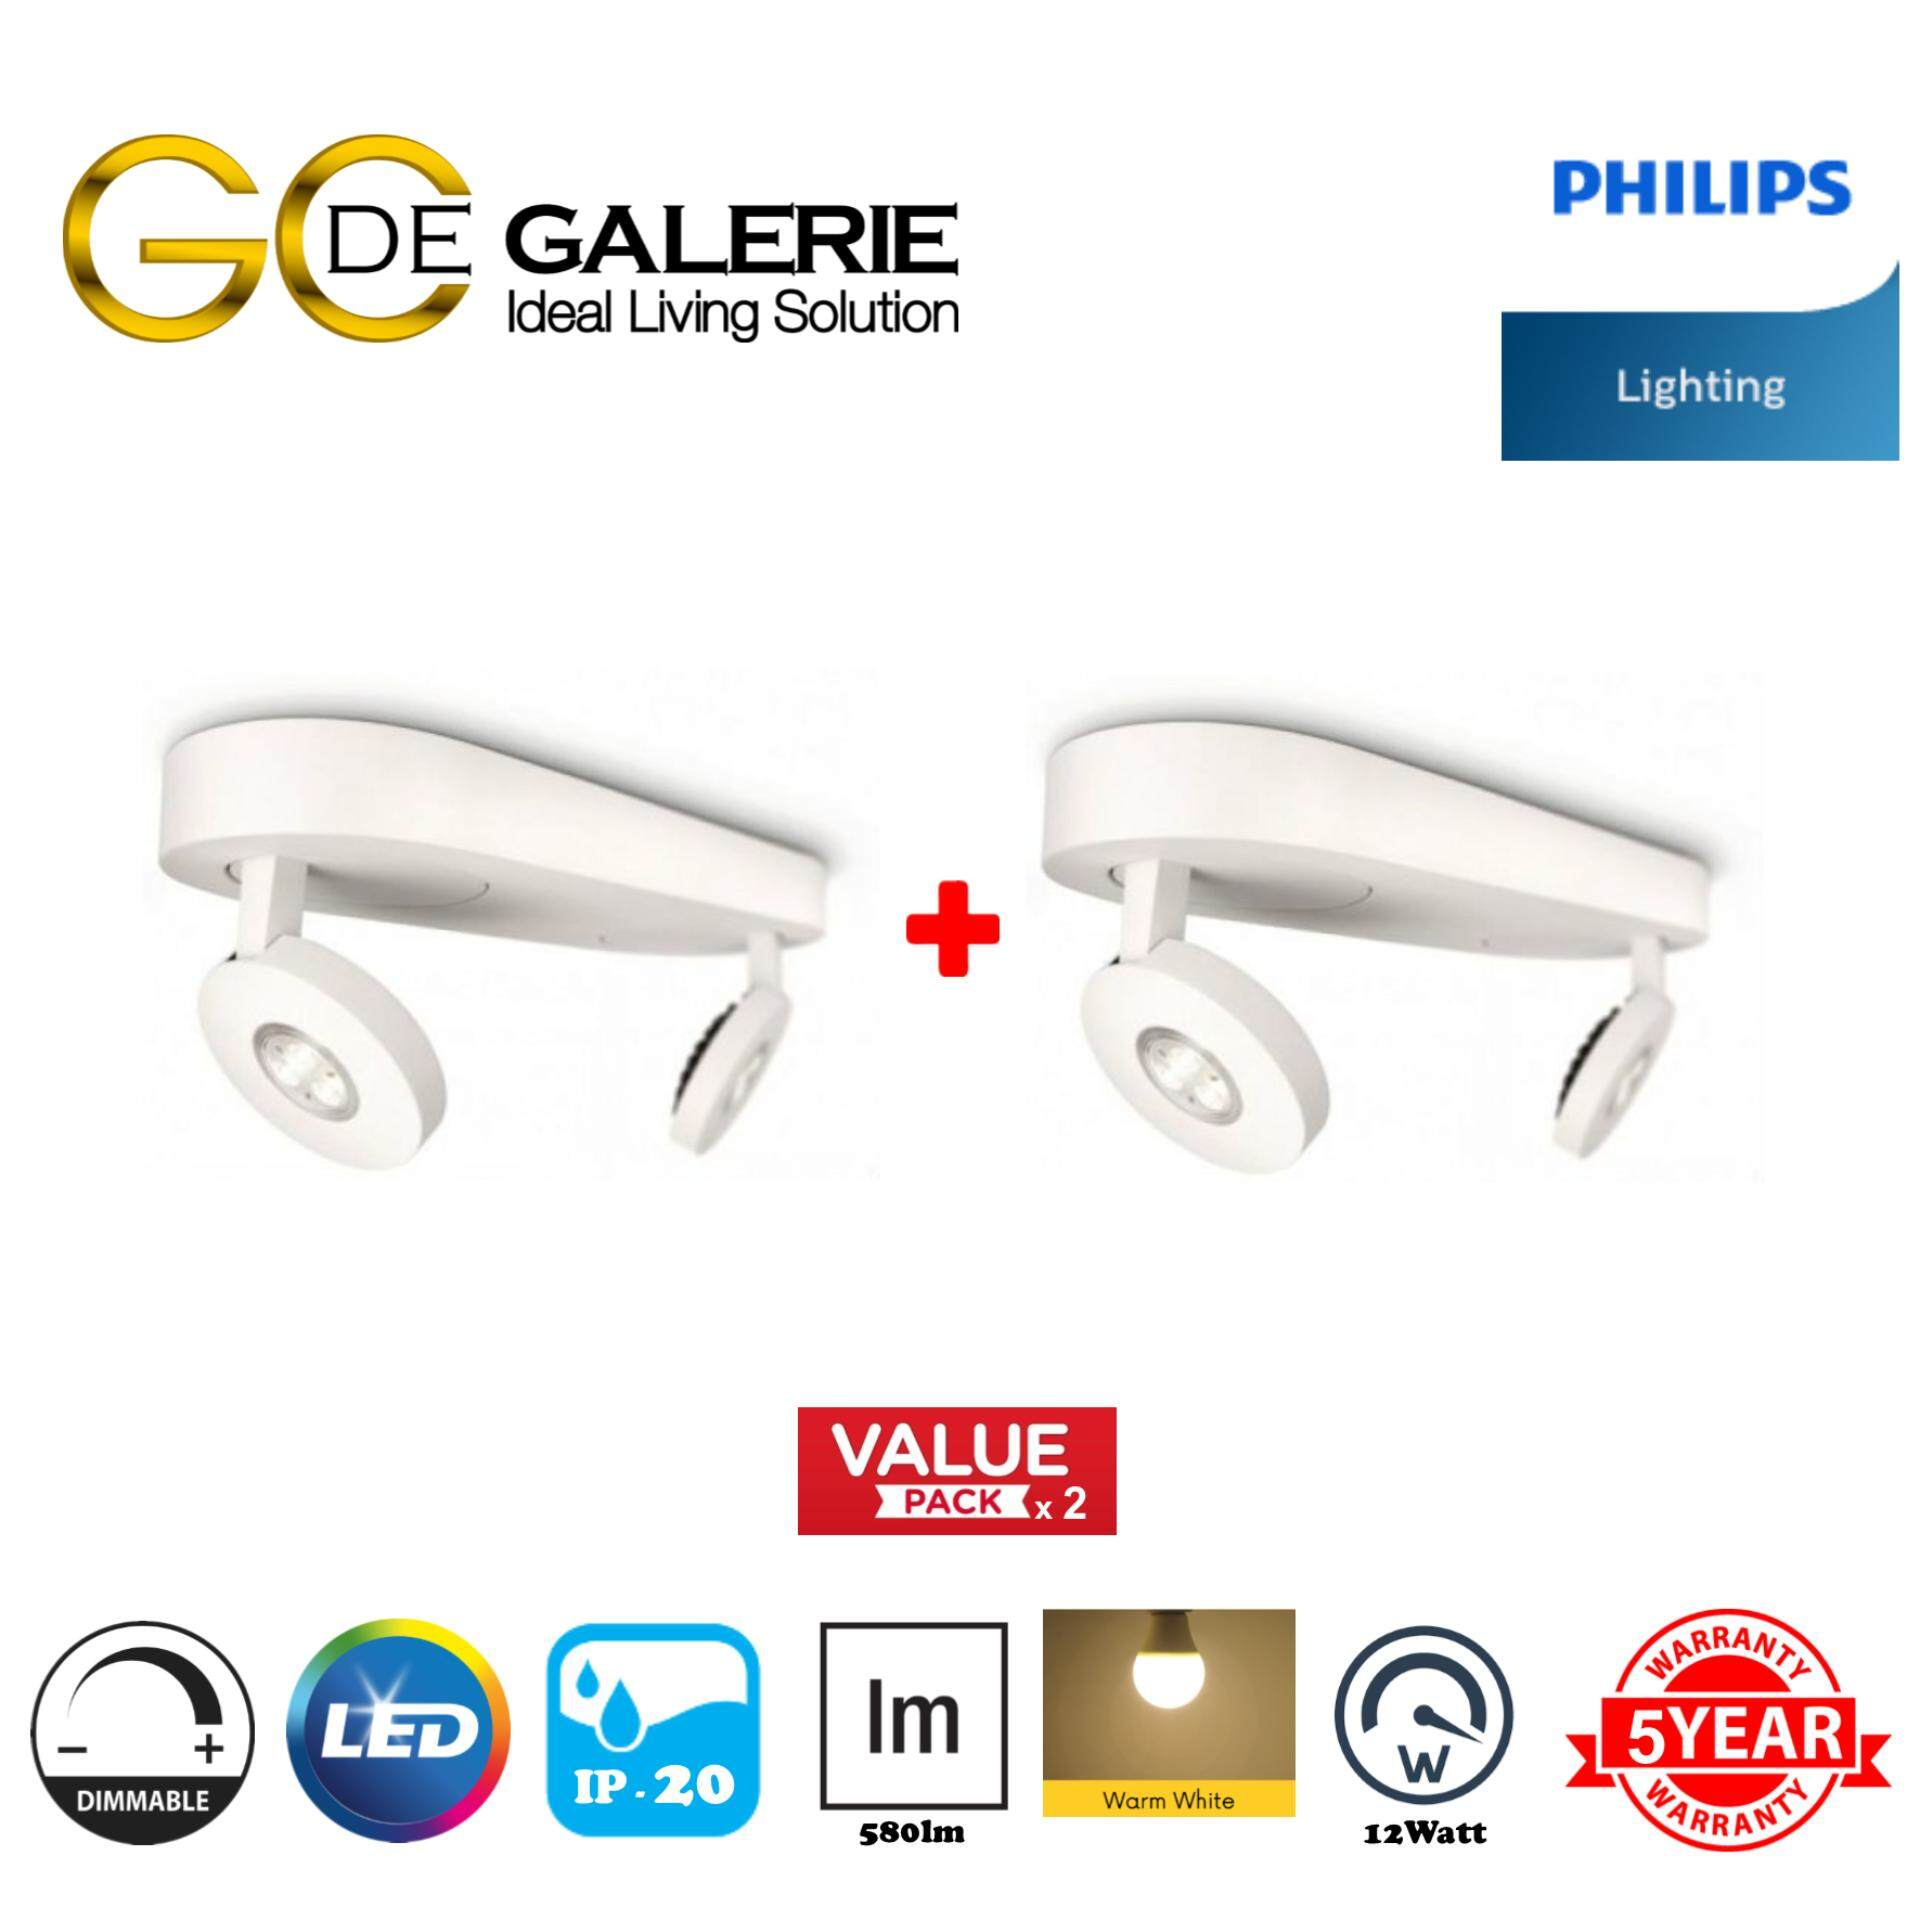 CEILING LIGHT LED PHILIPS 69070/2 SCOPE WH 2x4W SELV (2 PACK)